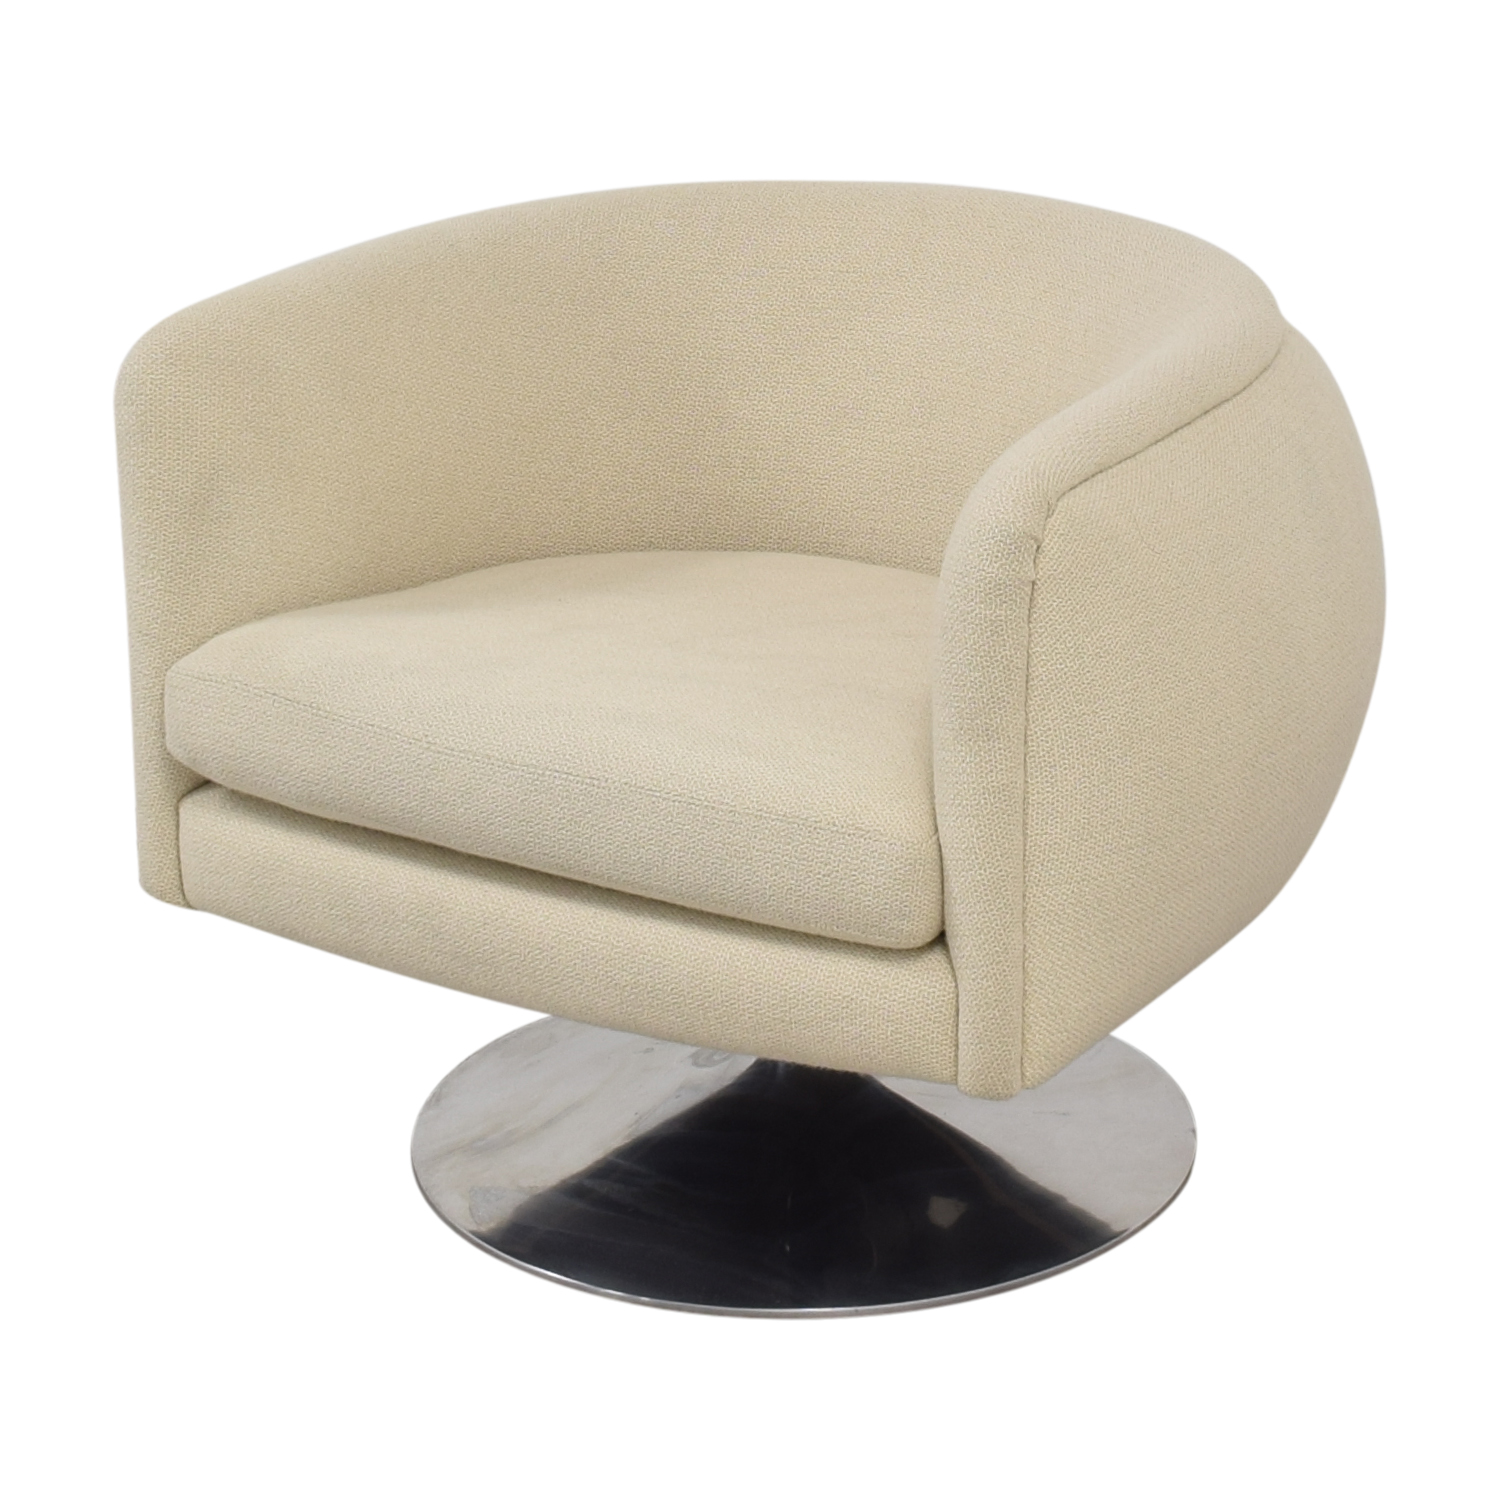 Knoll D'Urso Swivel Chair / Accent Chairs